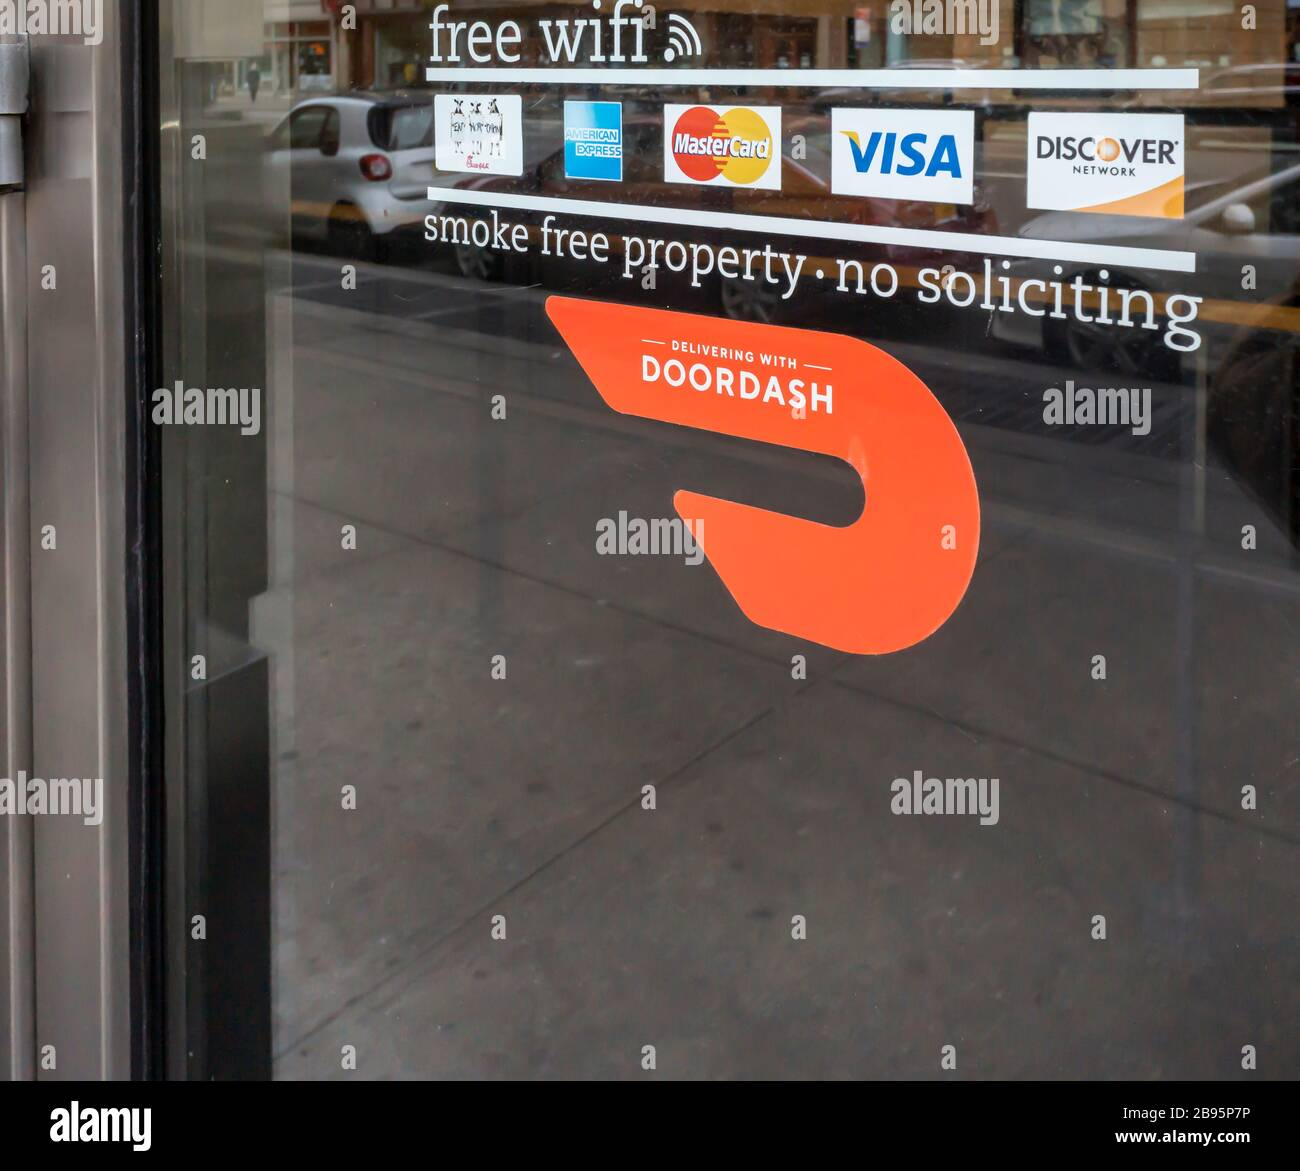 A sticker on the door of a Chick-Fil-A in New York informs shoppers of their use of Doordash as a delivery service, seen on Saturday, March 21, 2020. (© Richard B. Levine) Stock Photo